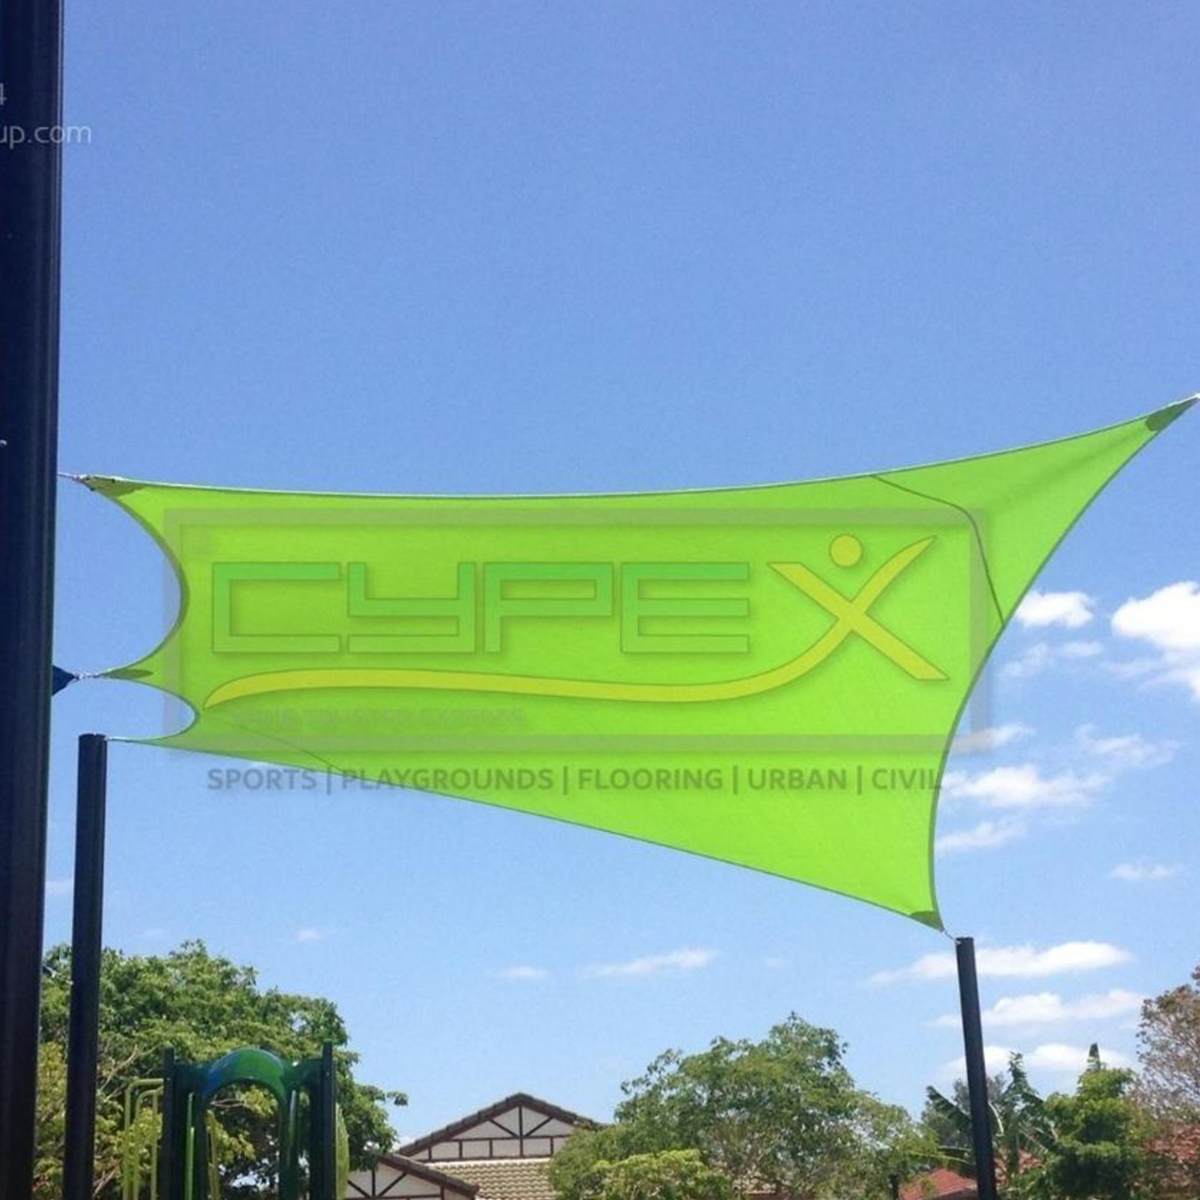 Cypex Group - Cleaning, Sports, Playgrounds, Flooring, Civil